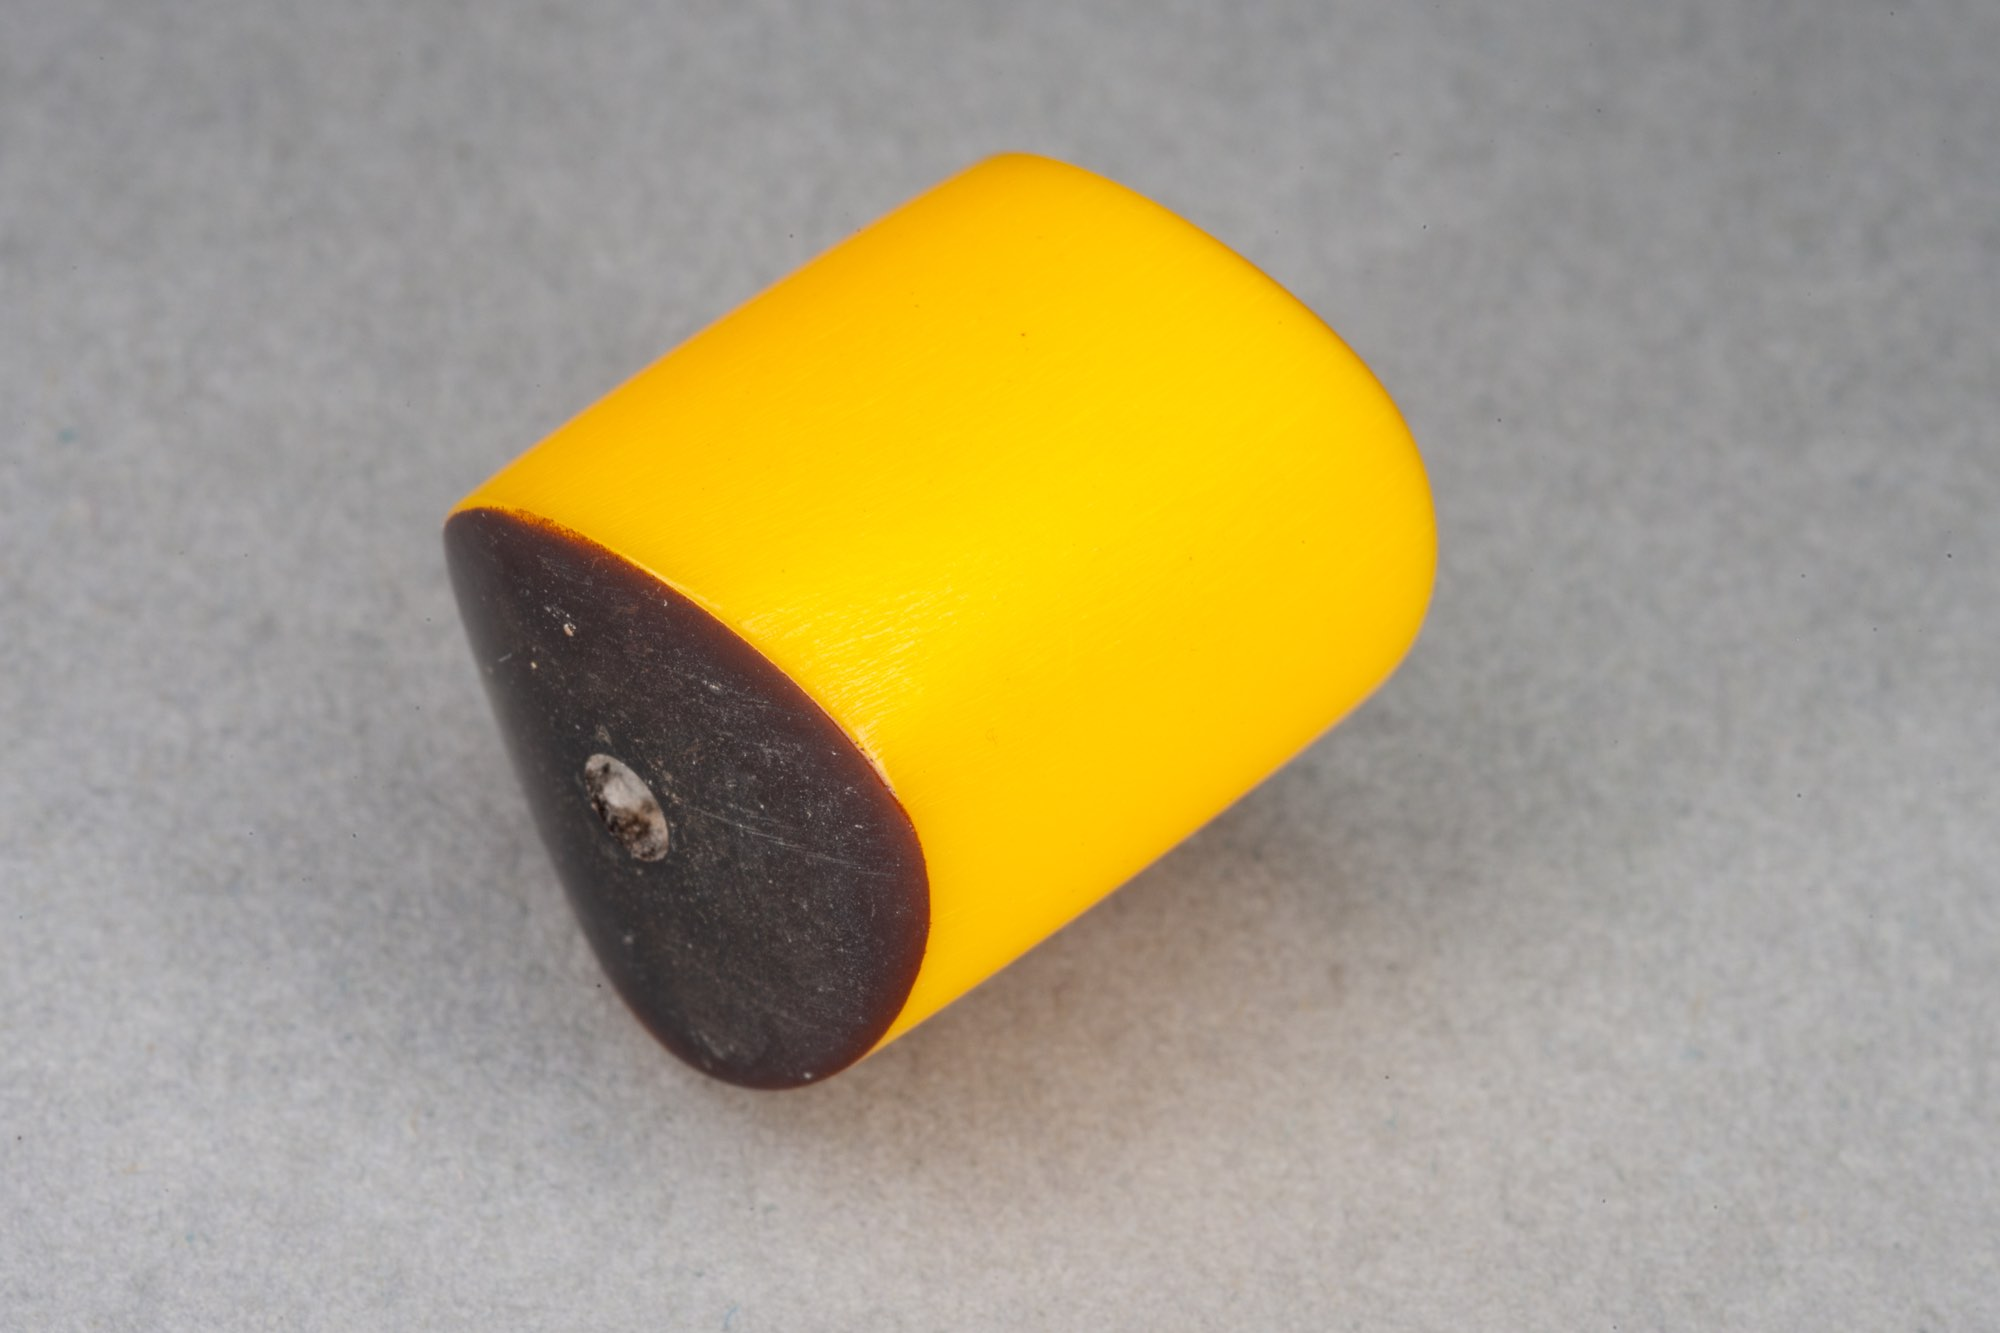 Yellow Barrel Resin Bead With Wavy Ends, 19x17mm, 2mm hole